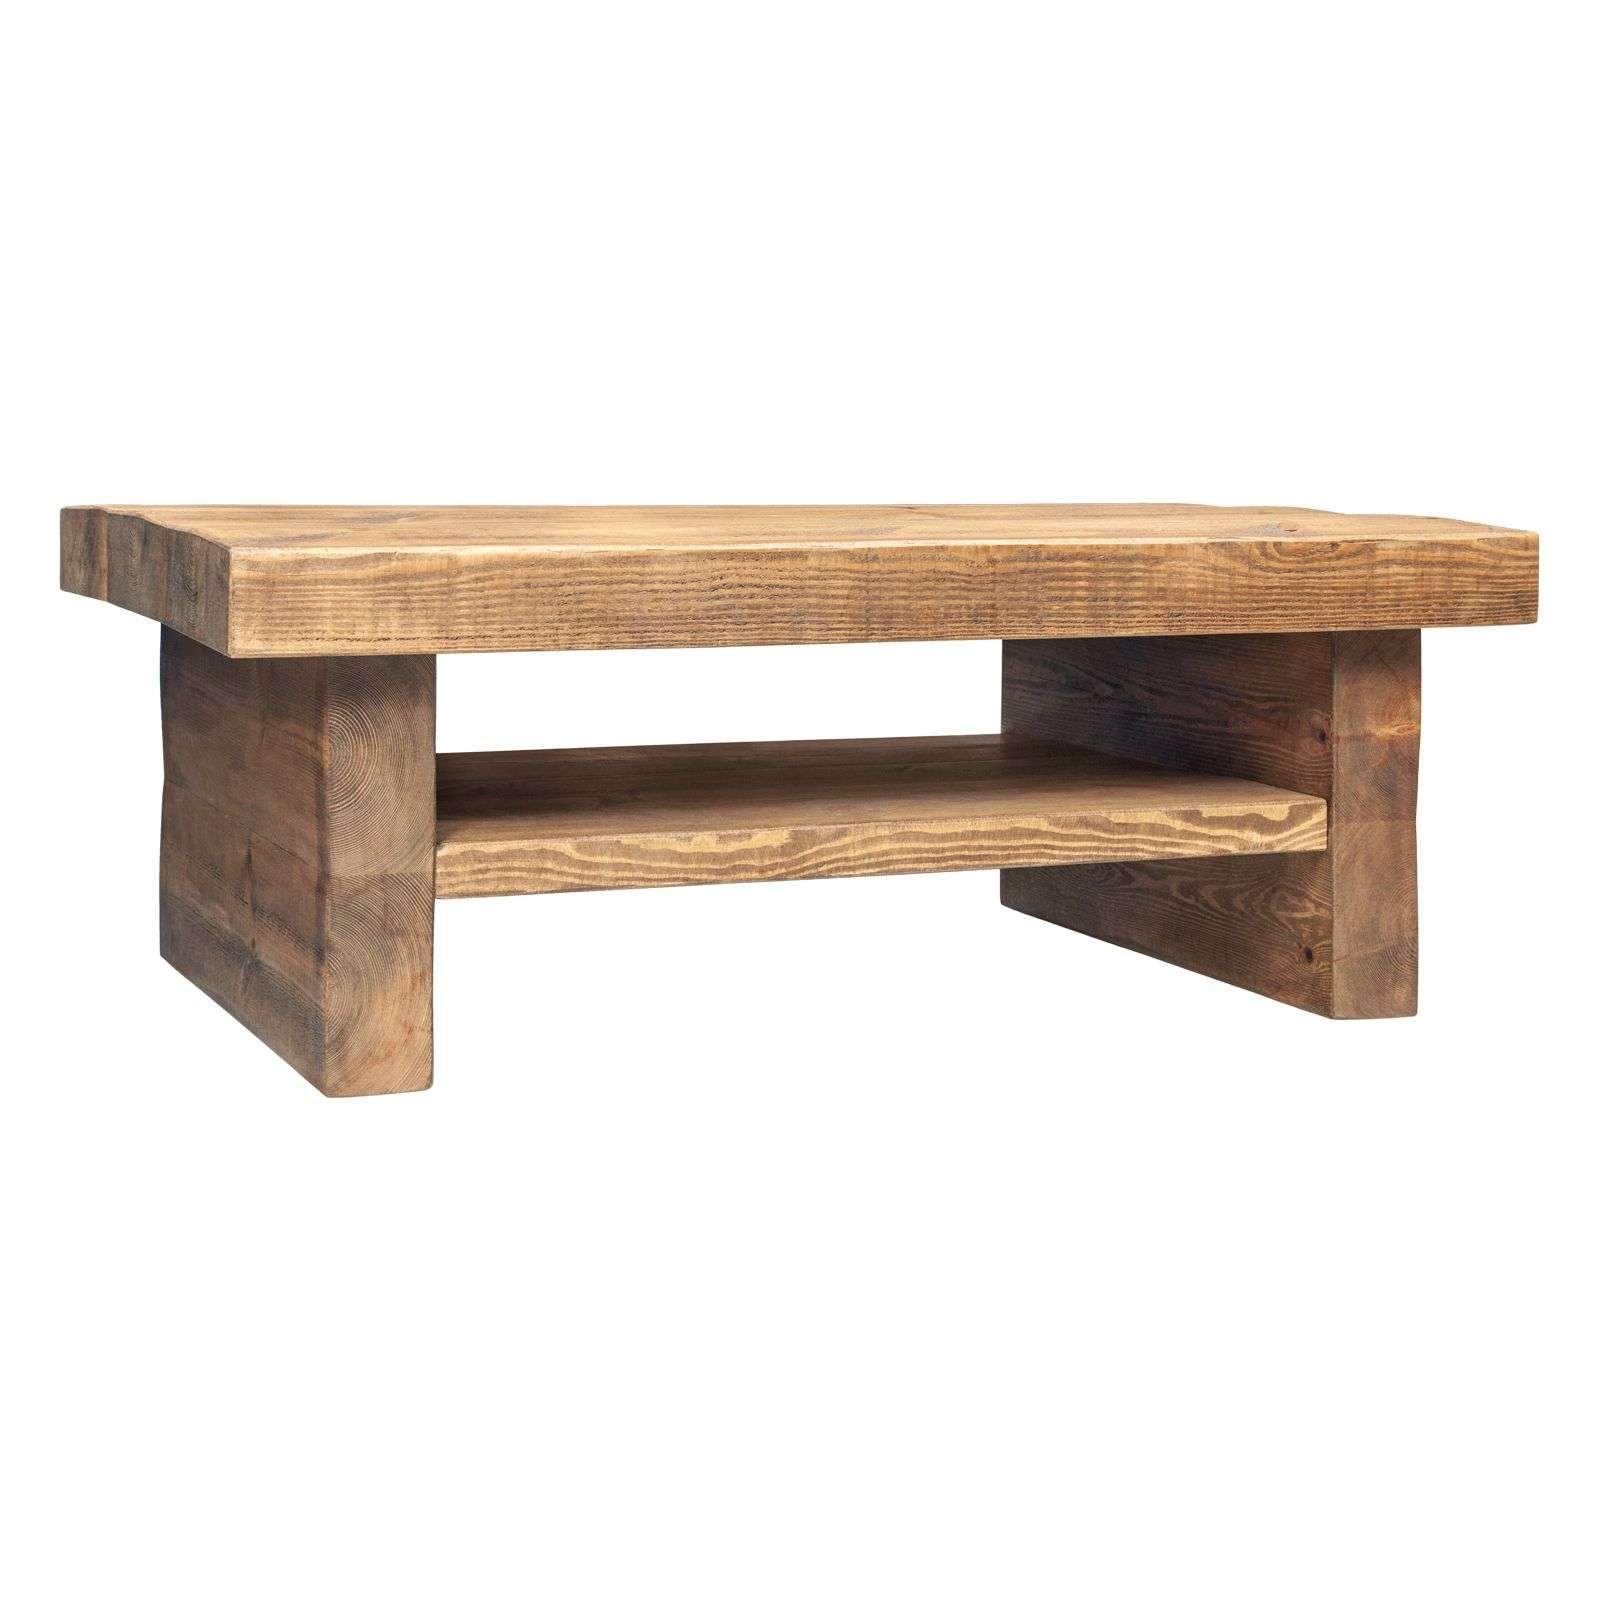 Favorite Chunky Wood Coffee Tables Intended For Coffee Table With Shelf – Tall 3 Inch Top 2 Leg (View 15 of 20)